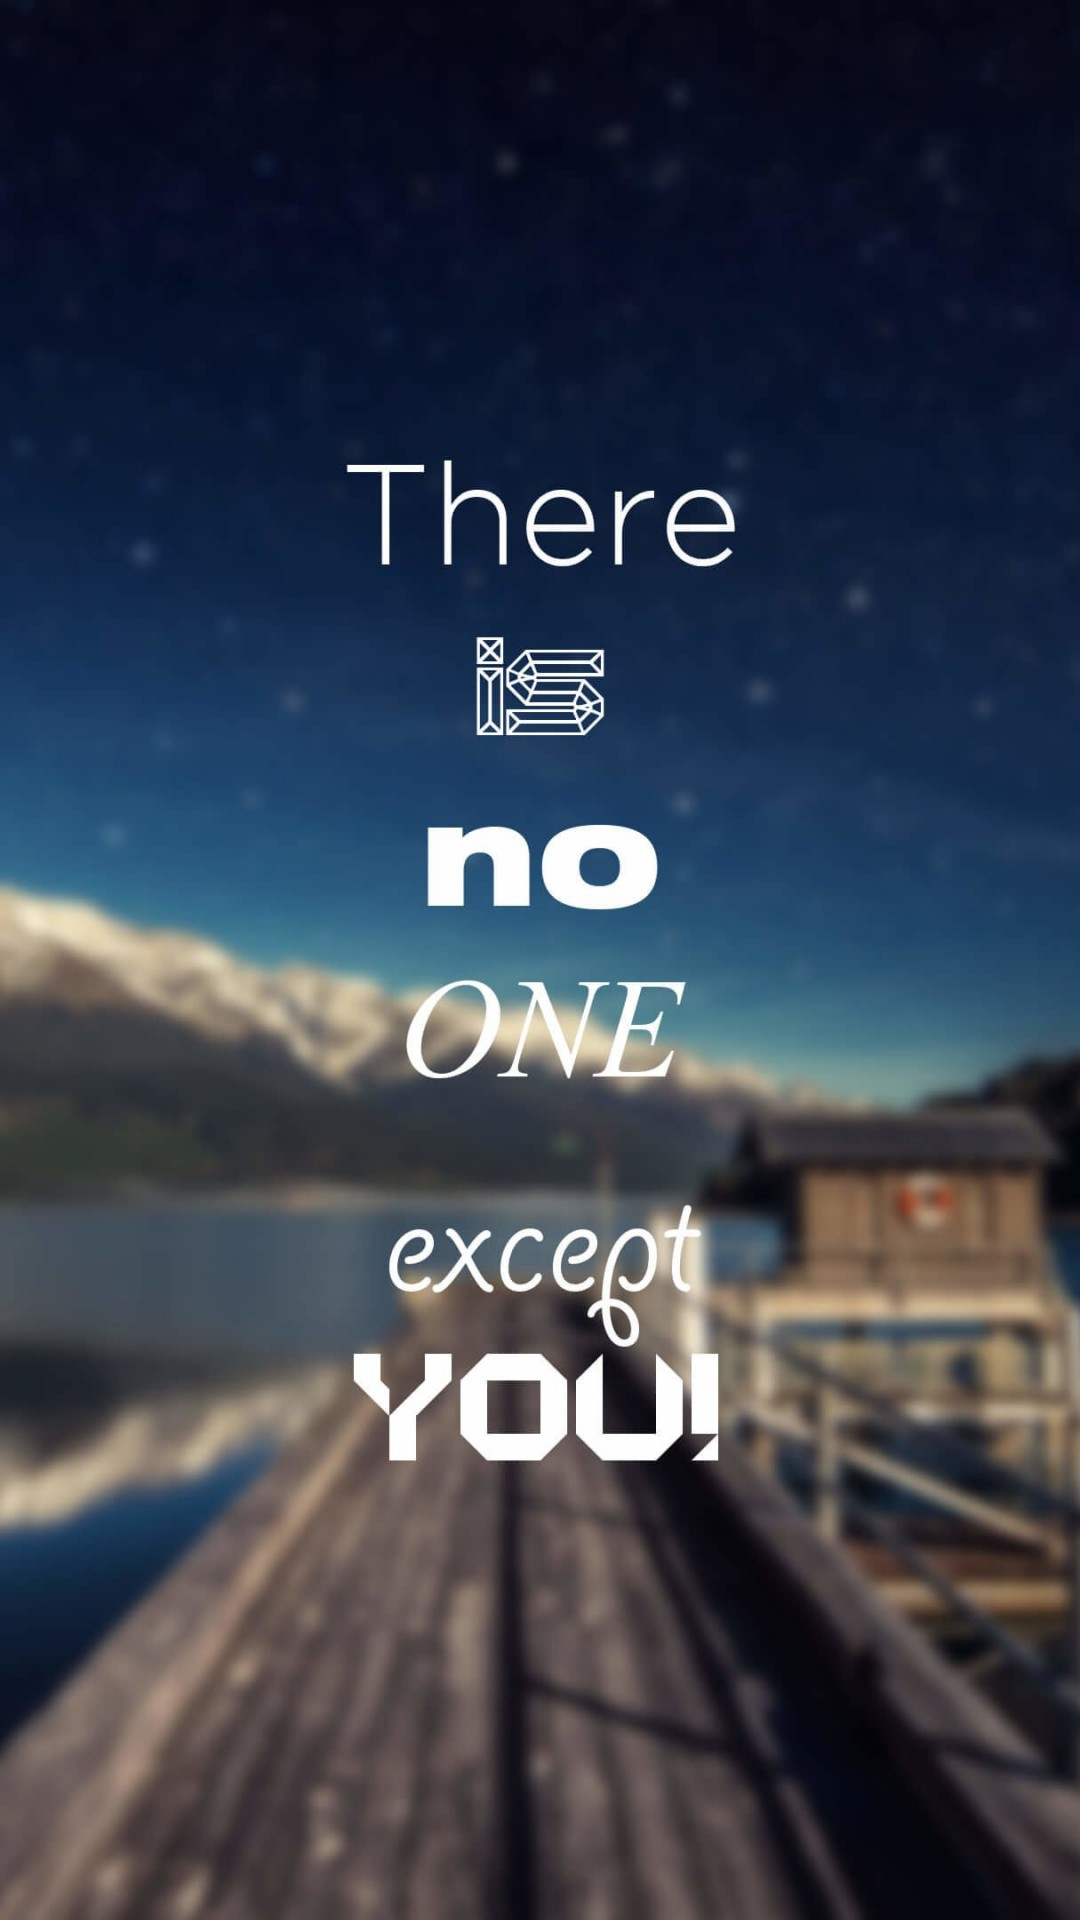 There Is No One Except You Wallpaper for Motorola Moto X